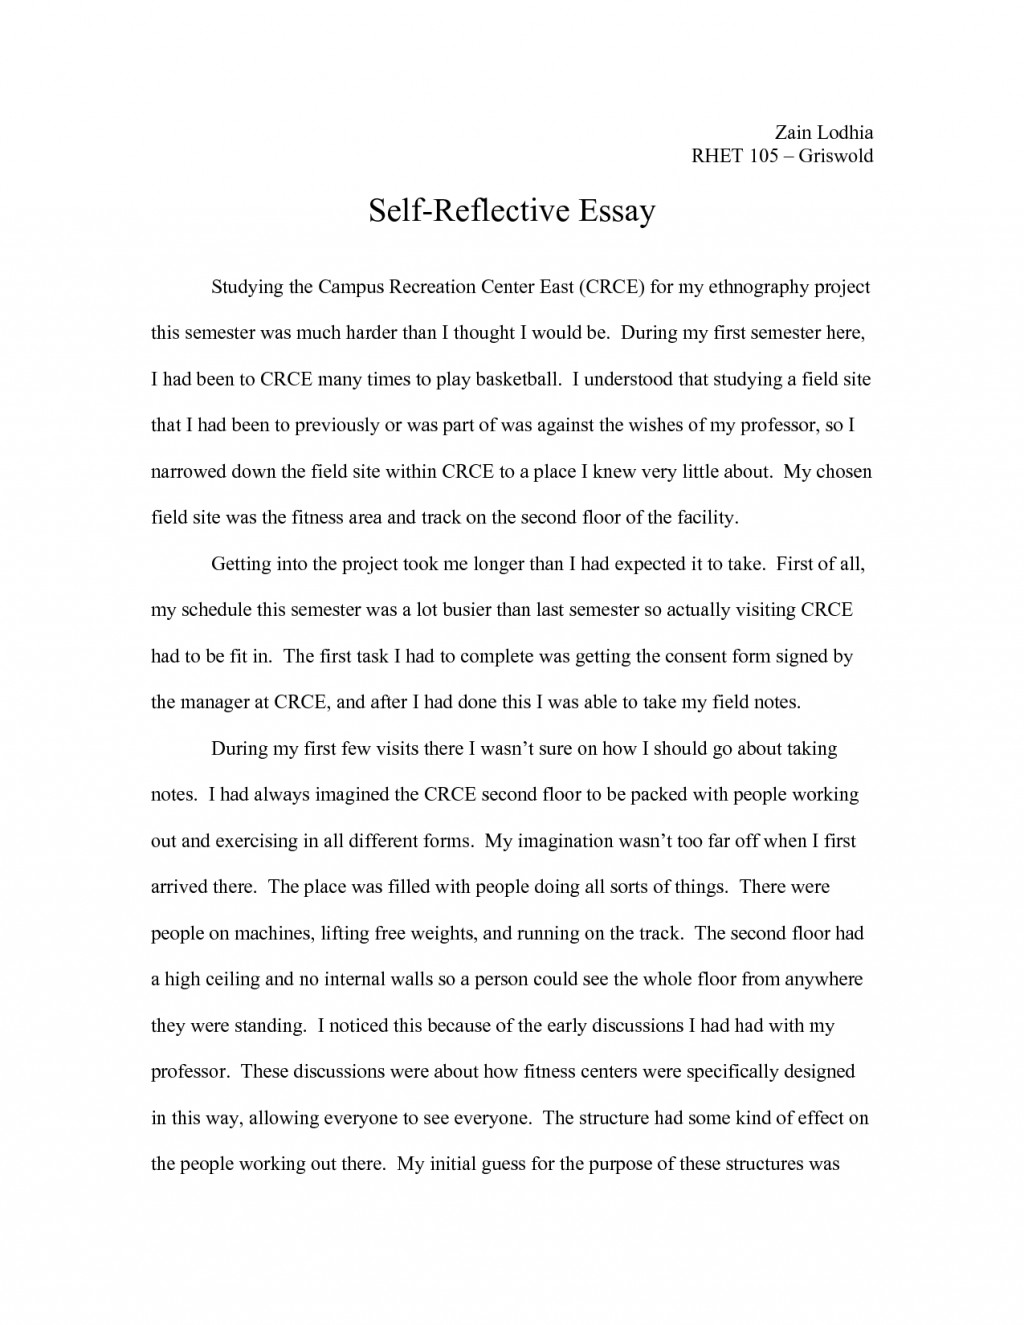 003 Qal0pwnf46 Reflective Essays Beautiful Essay Examples Writing Pdf College Sample Large